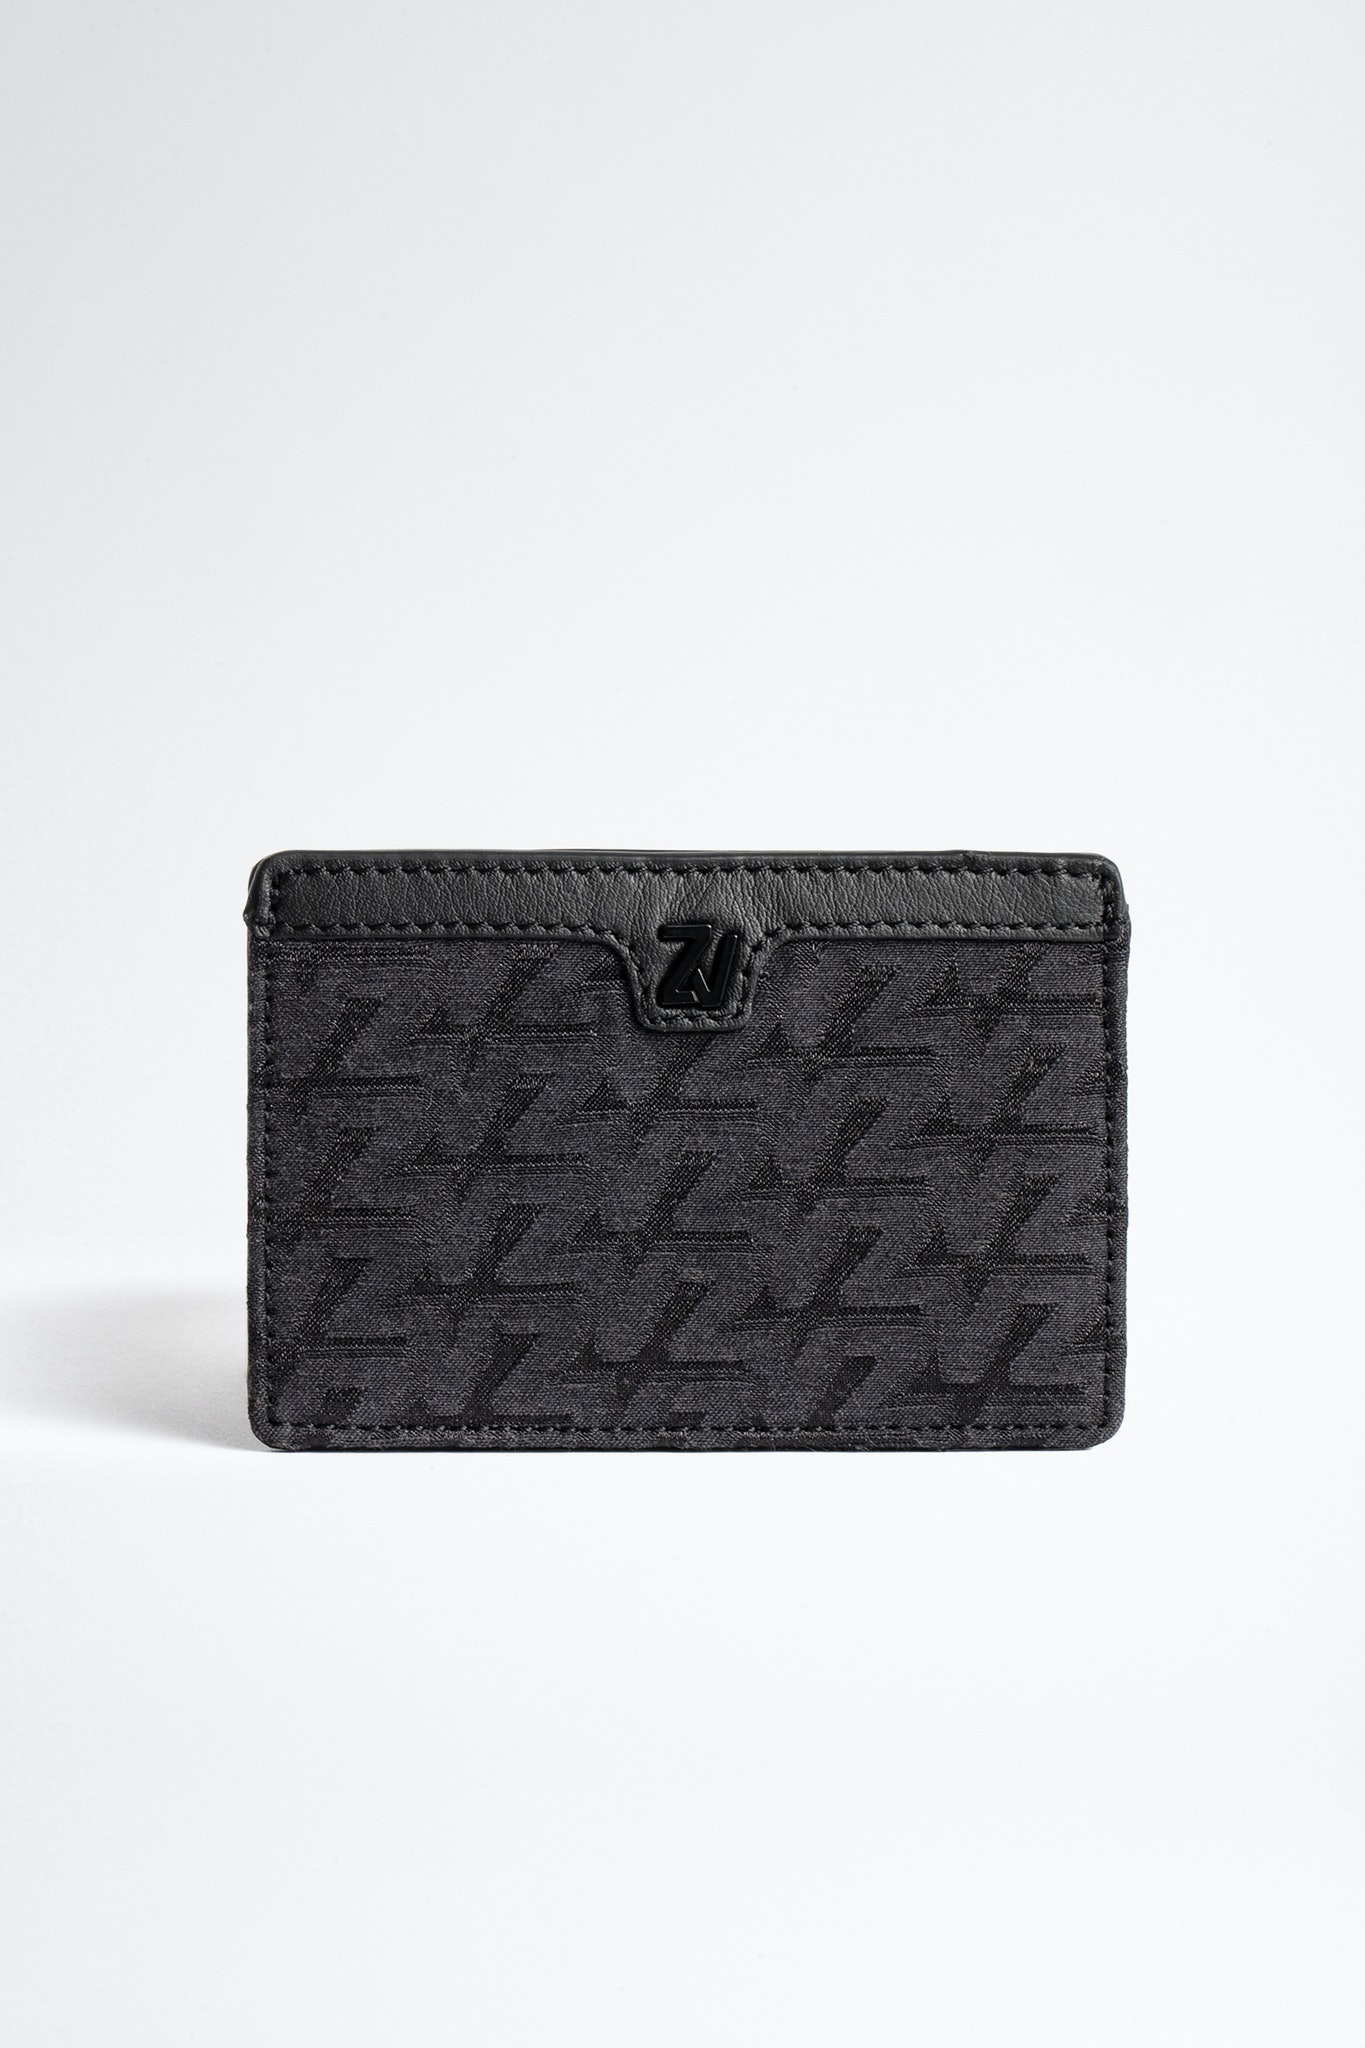 ZV Initiale Nyro Monogram Card Holder